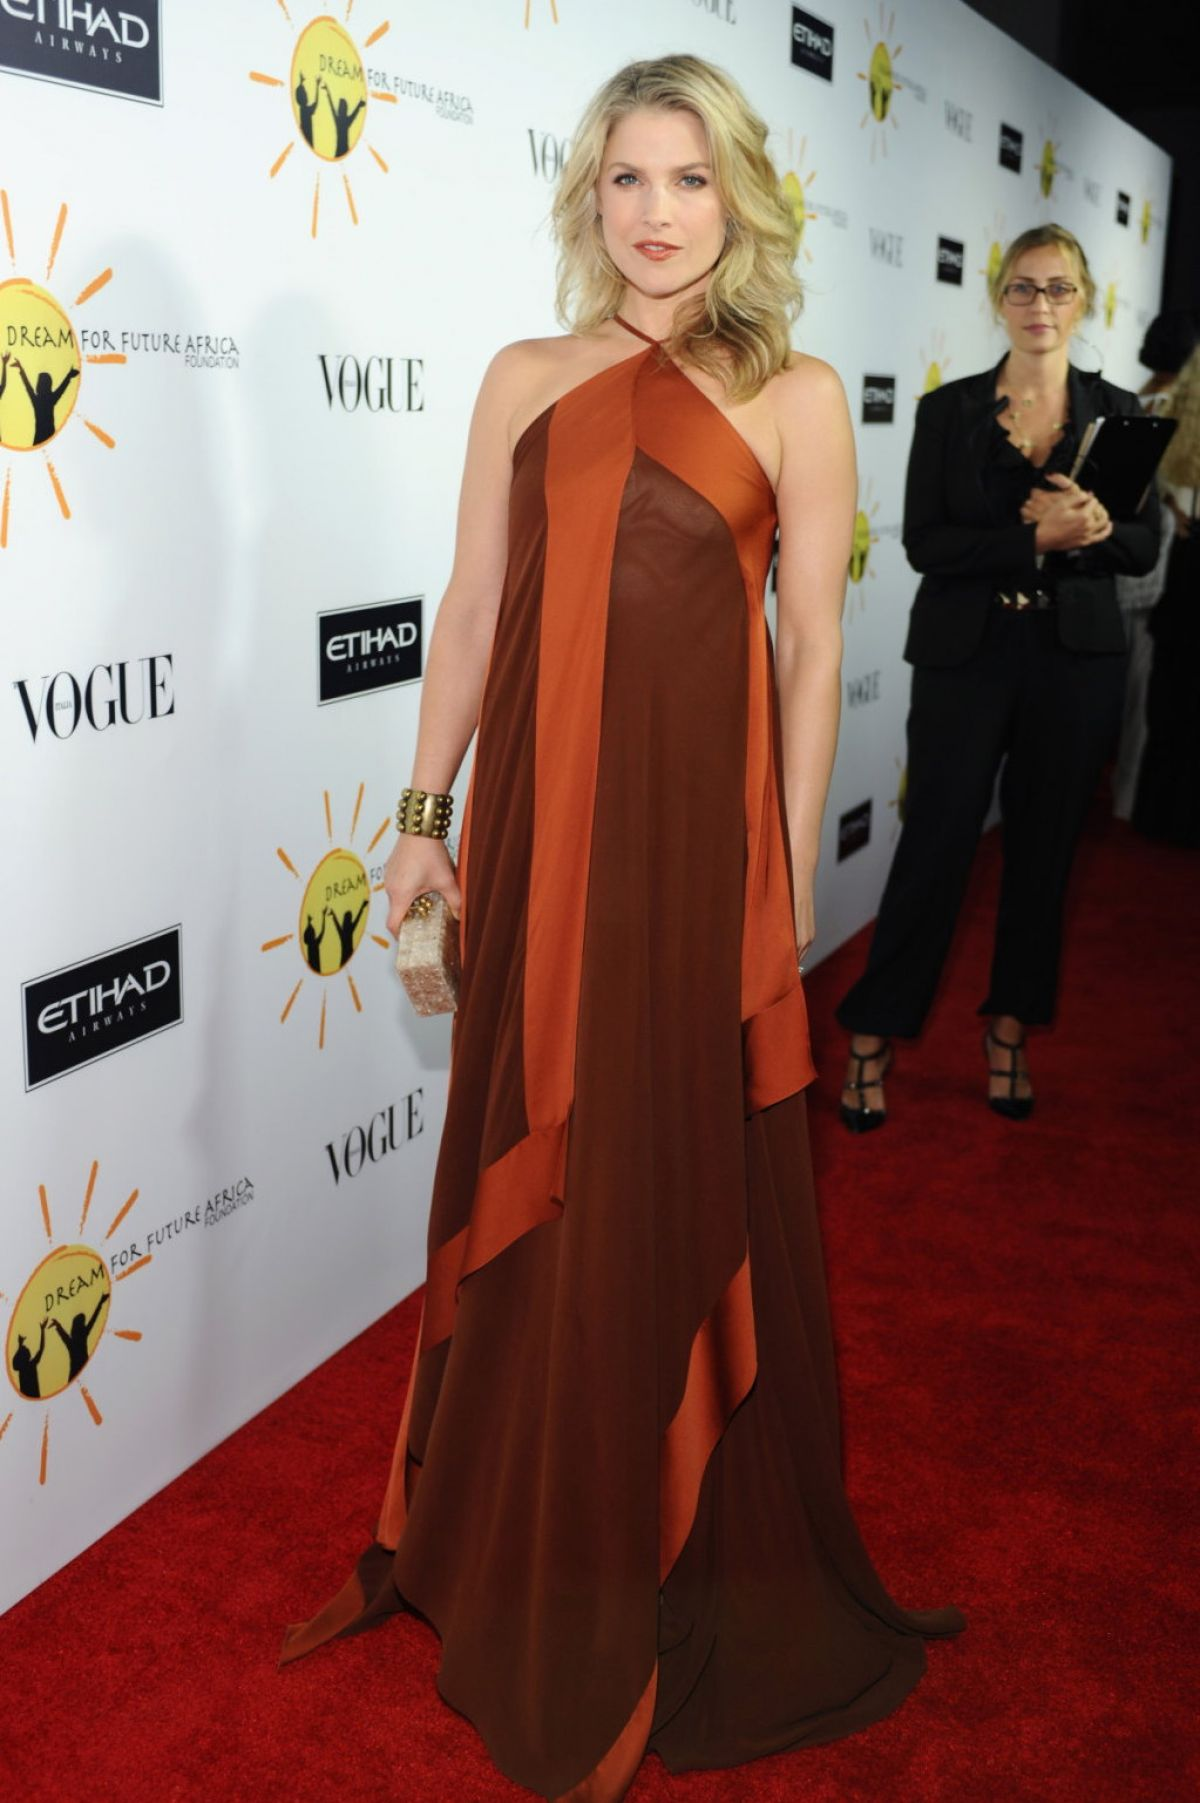 Ali Larter At Dream For Future Africa Foundation Inaugural Gala In Beverly Hills